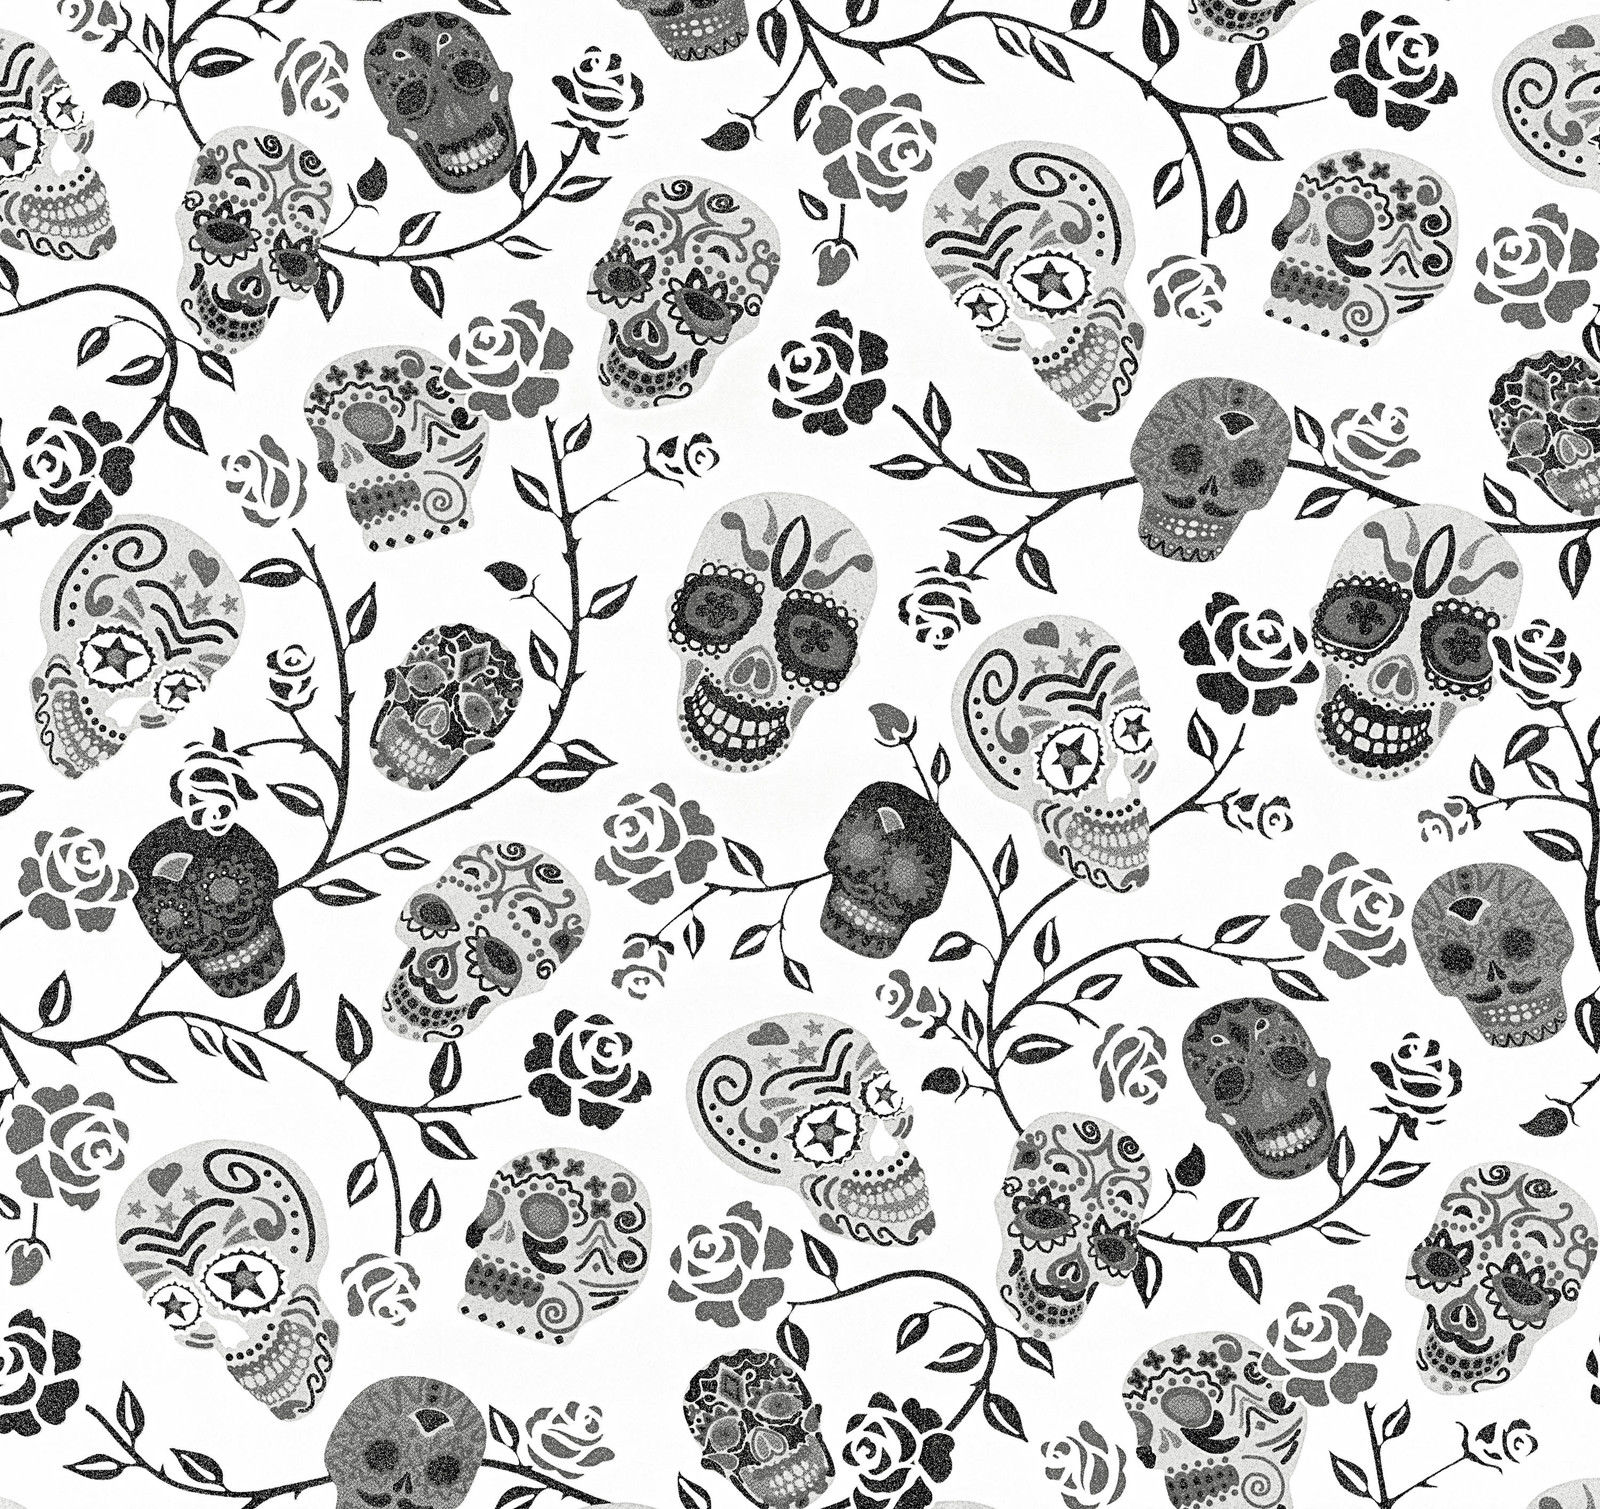 Skulls wallpaper floral flowers stars glitter gothic white silver skulls wallpaper floral flowers stars glitter gothic white silver black grey ps mightylinksfo